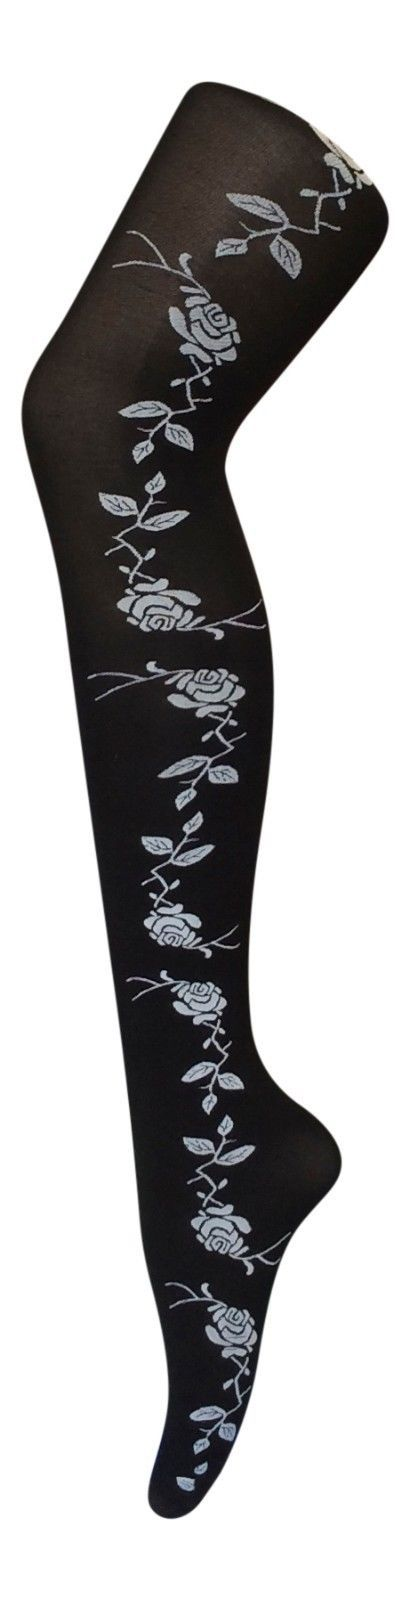 Ladies Black 40 Den Opaque Tights with Rose Designs, One Size 8-14 uk, 36-42 eur